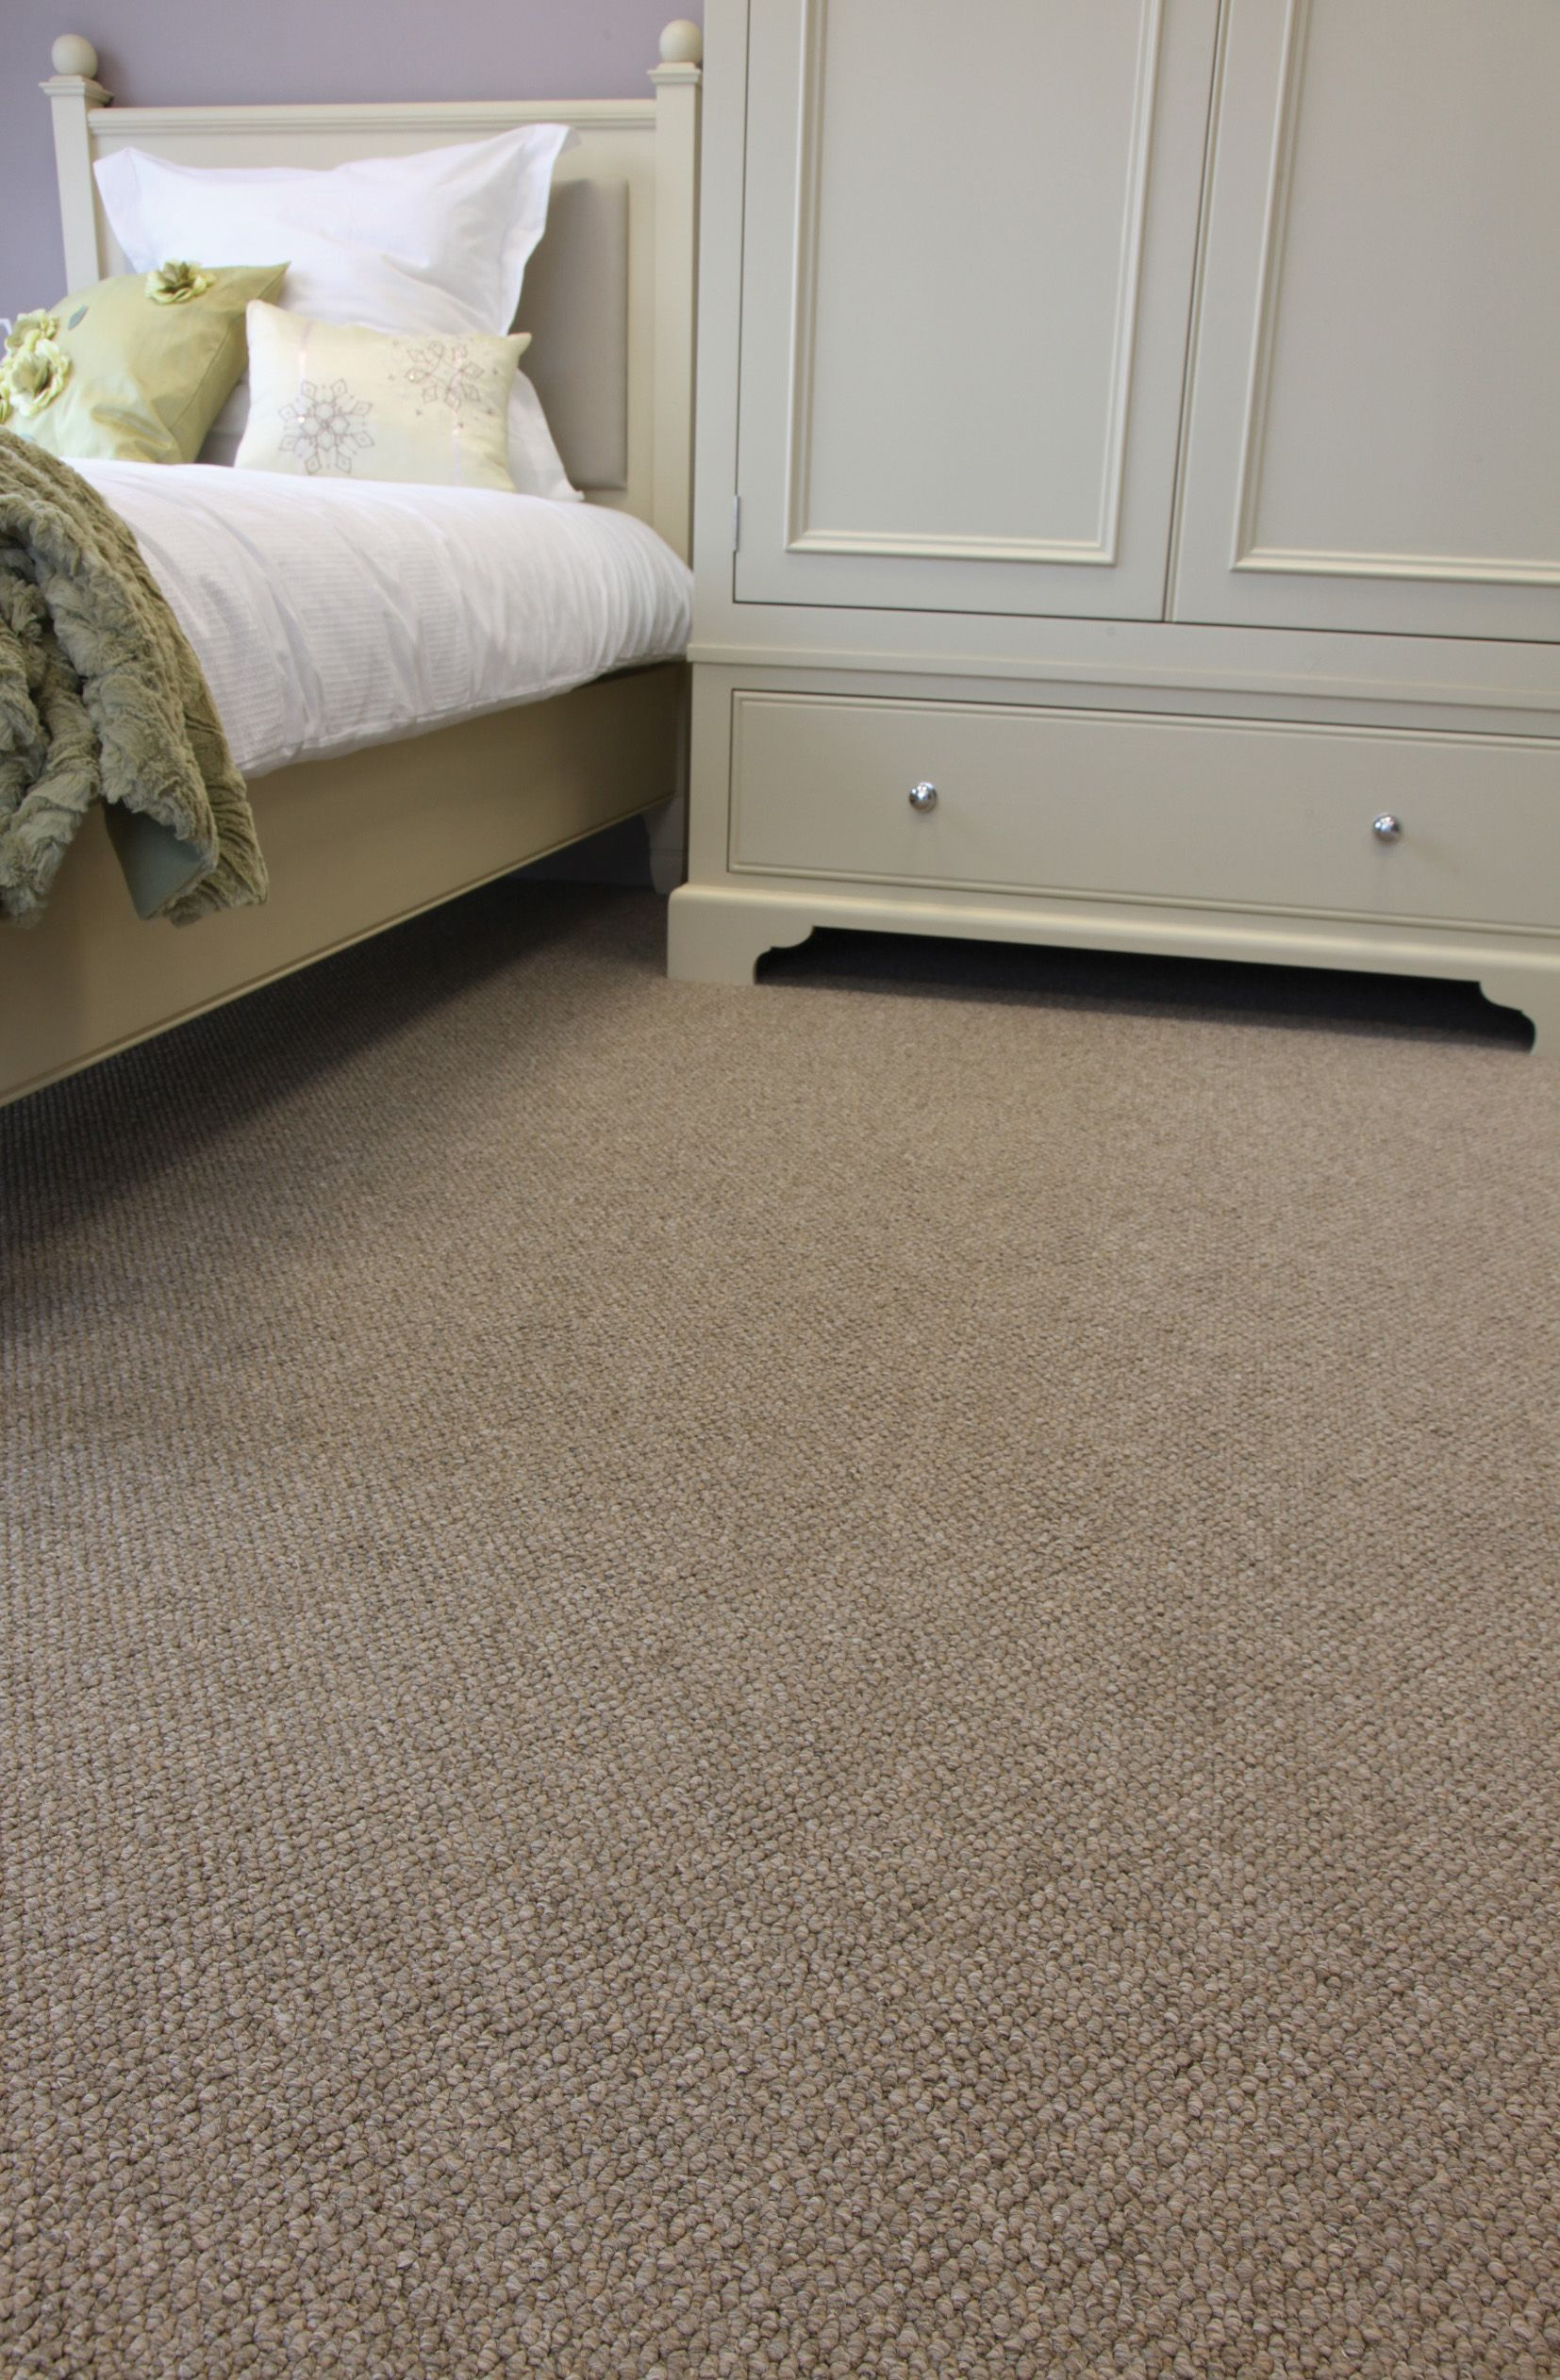 Cosy bedroom carpet by Hardy Carpets | Bedroom carpet ...